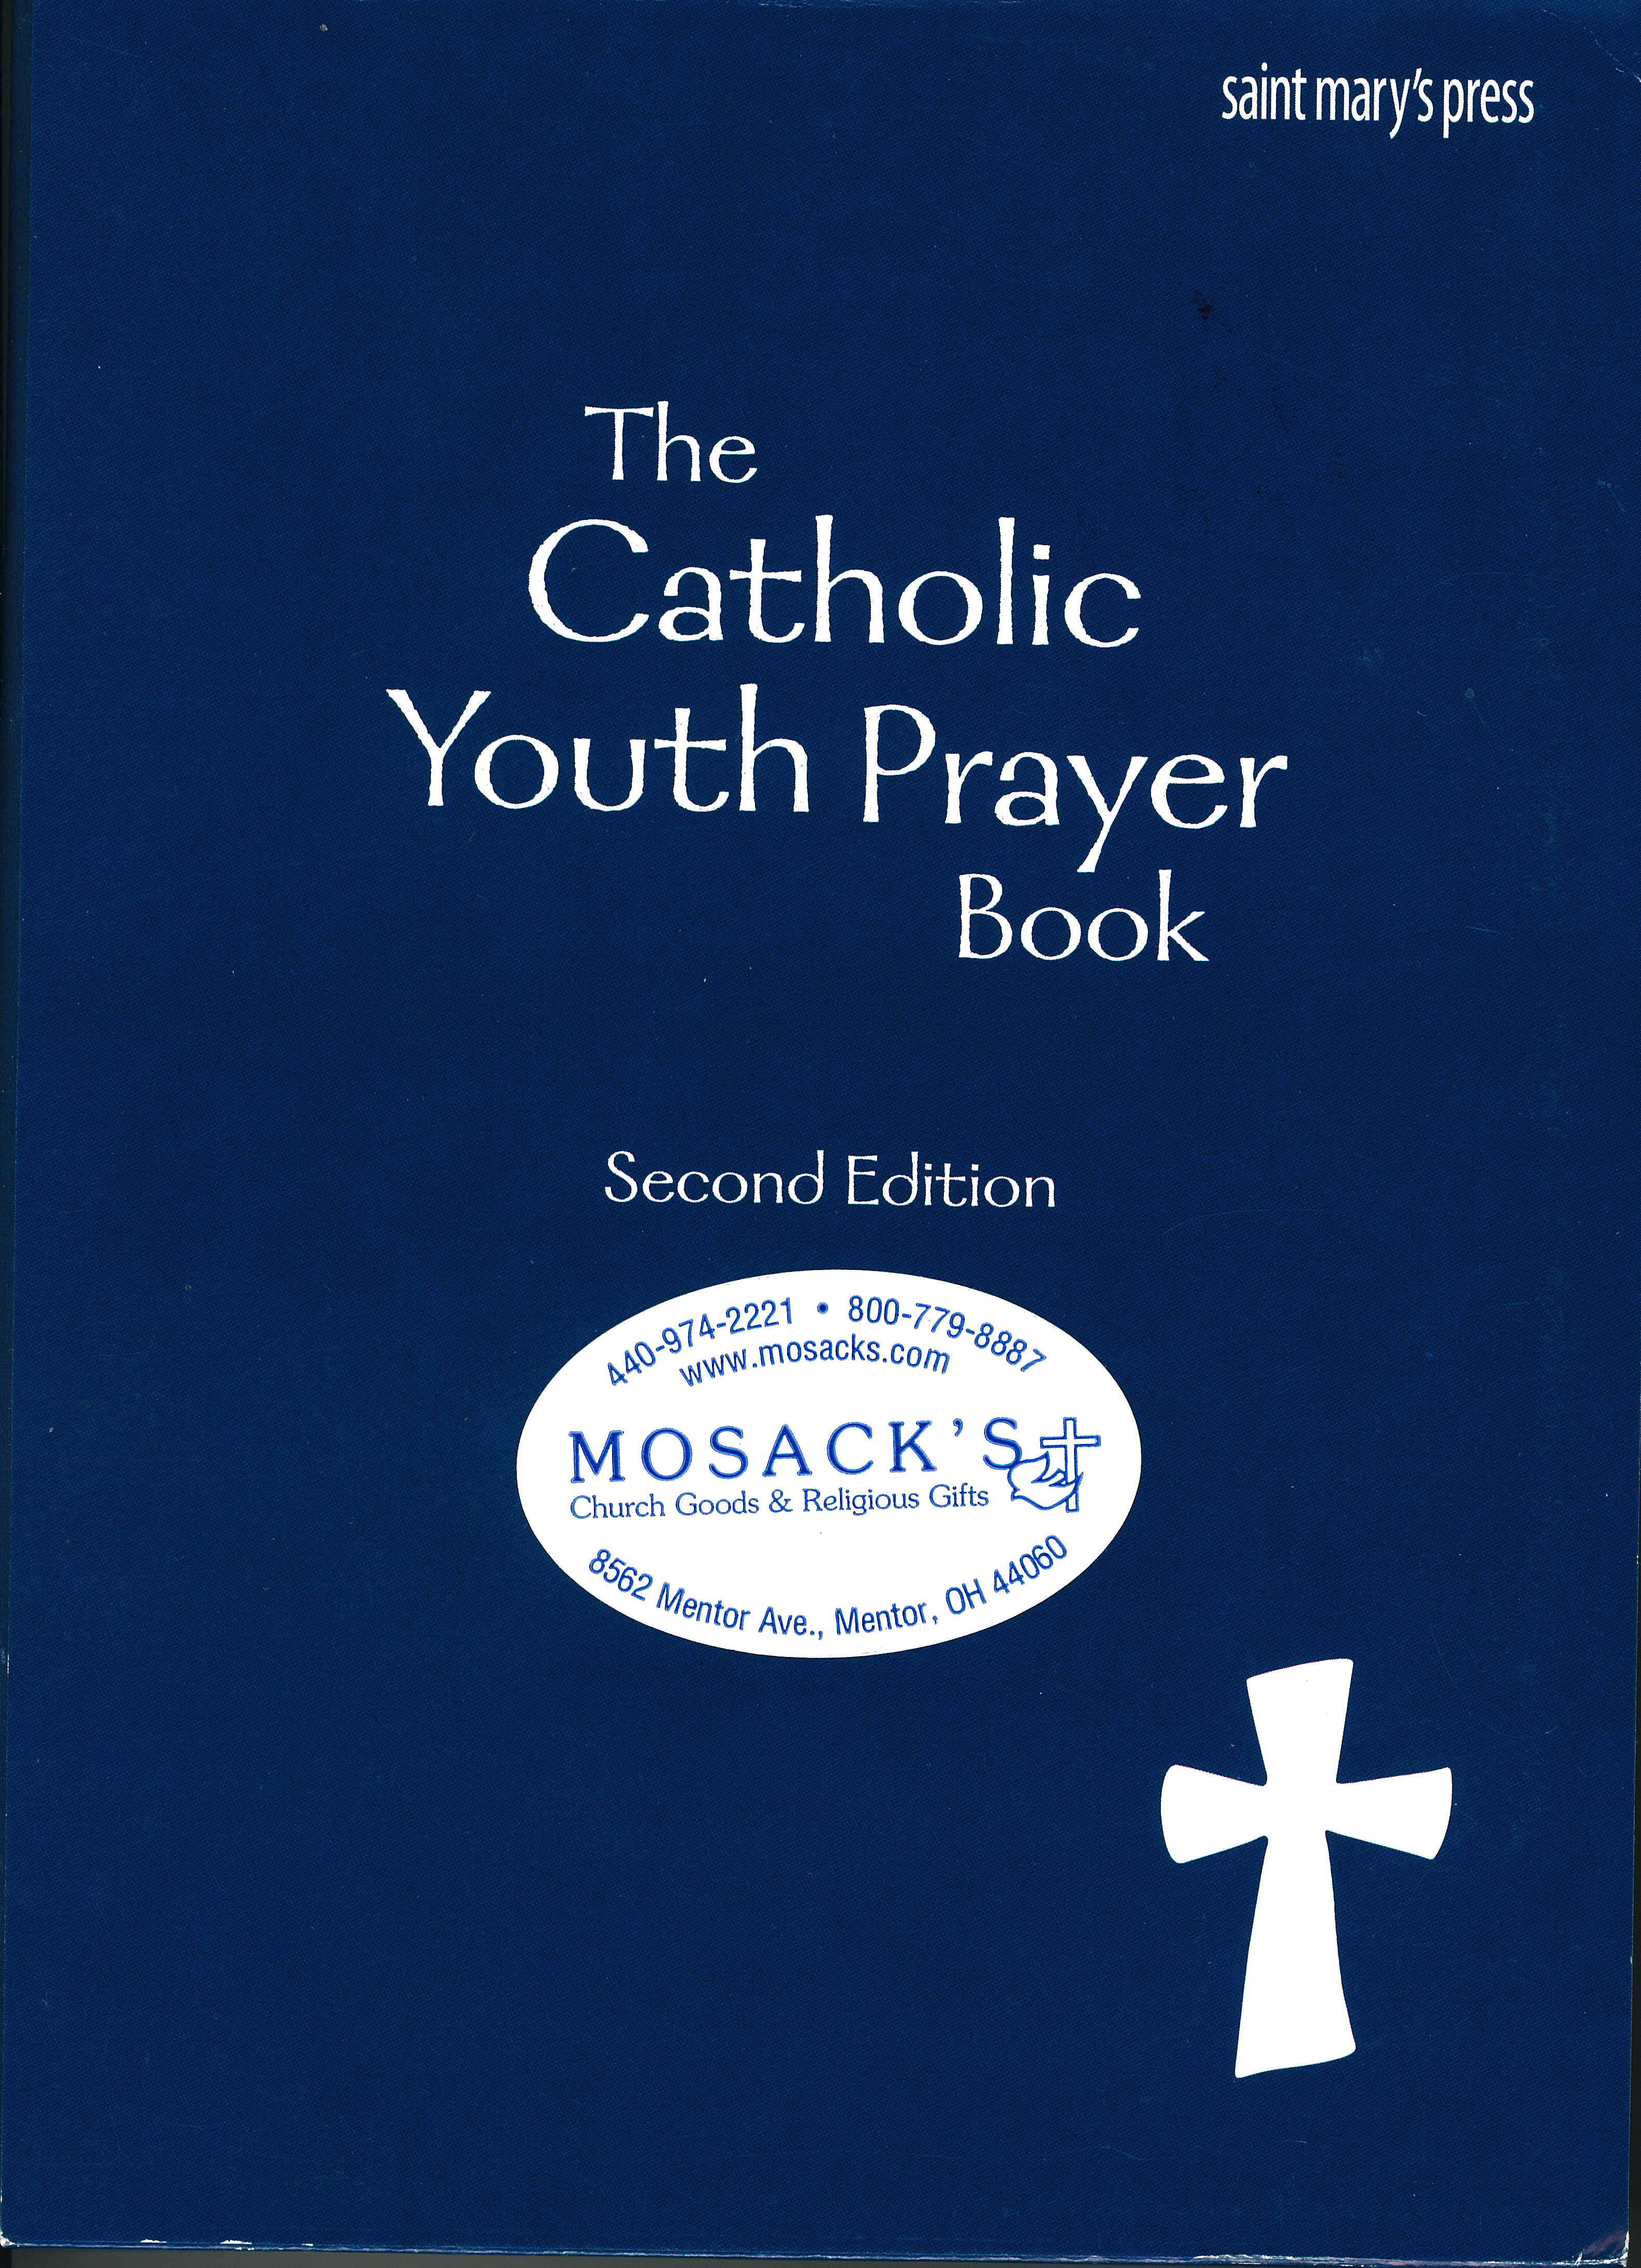 The Catholic Youth Prayer Book, Second Edition, from Saint Mary's Press 69-9781599823331